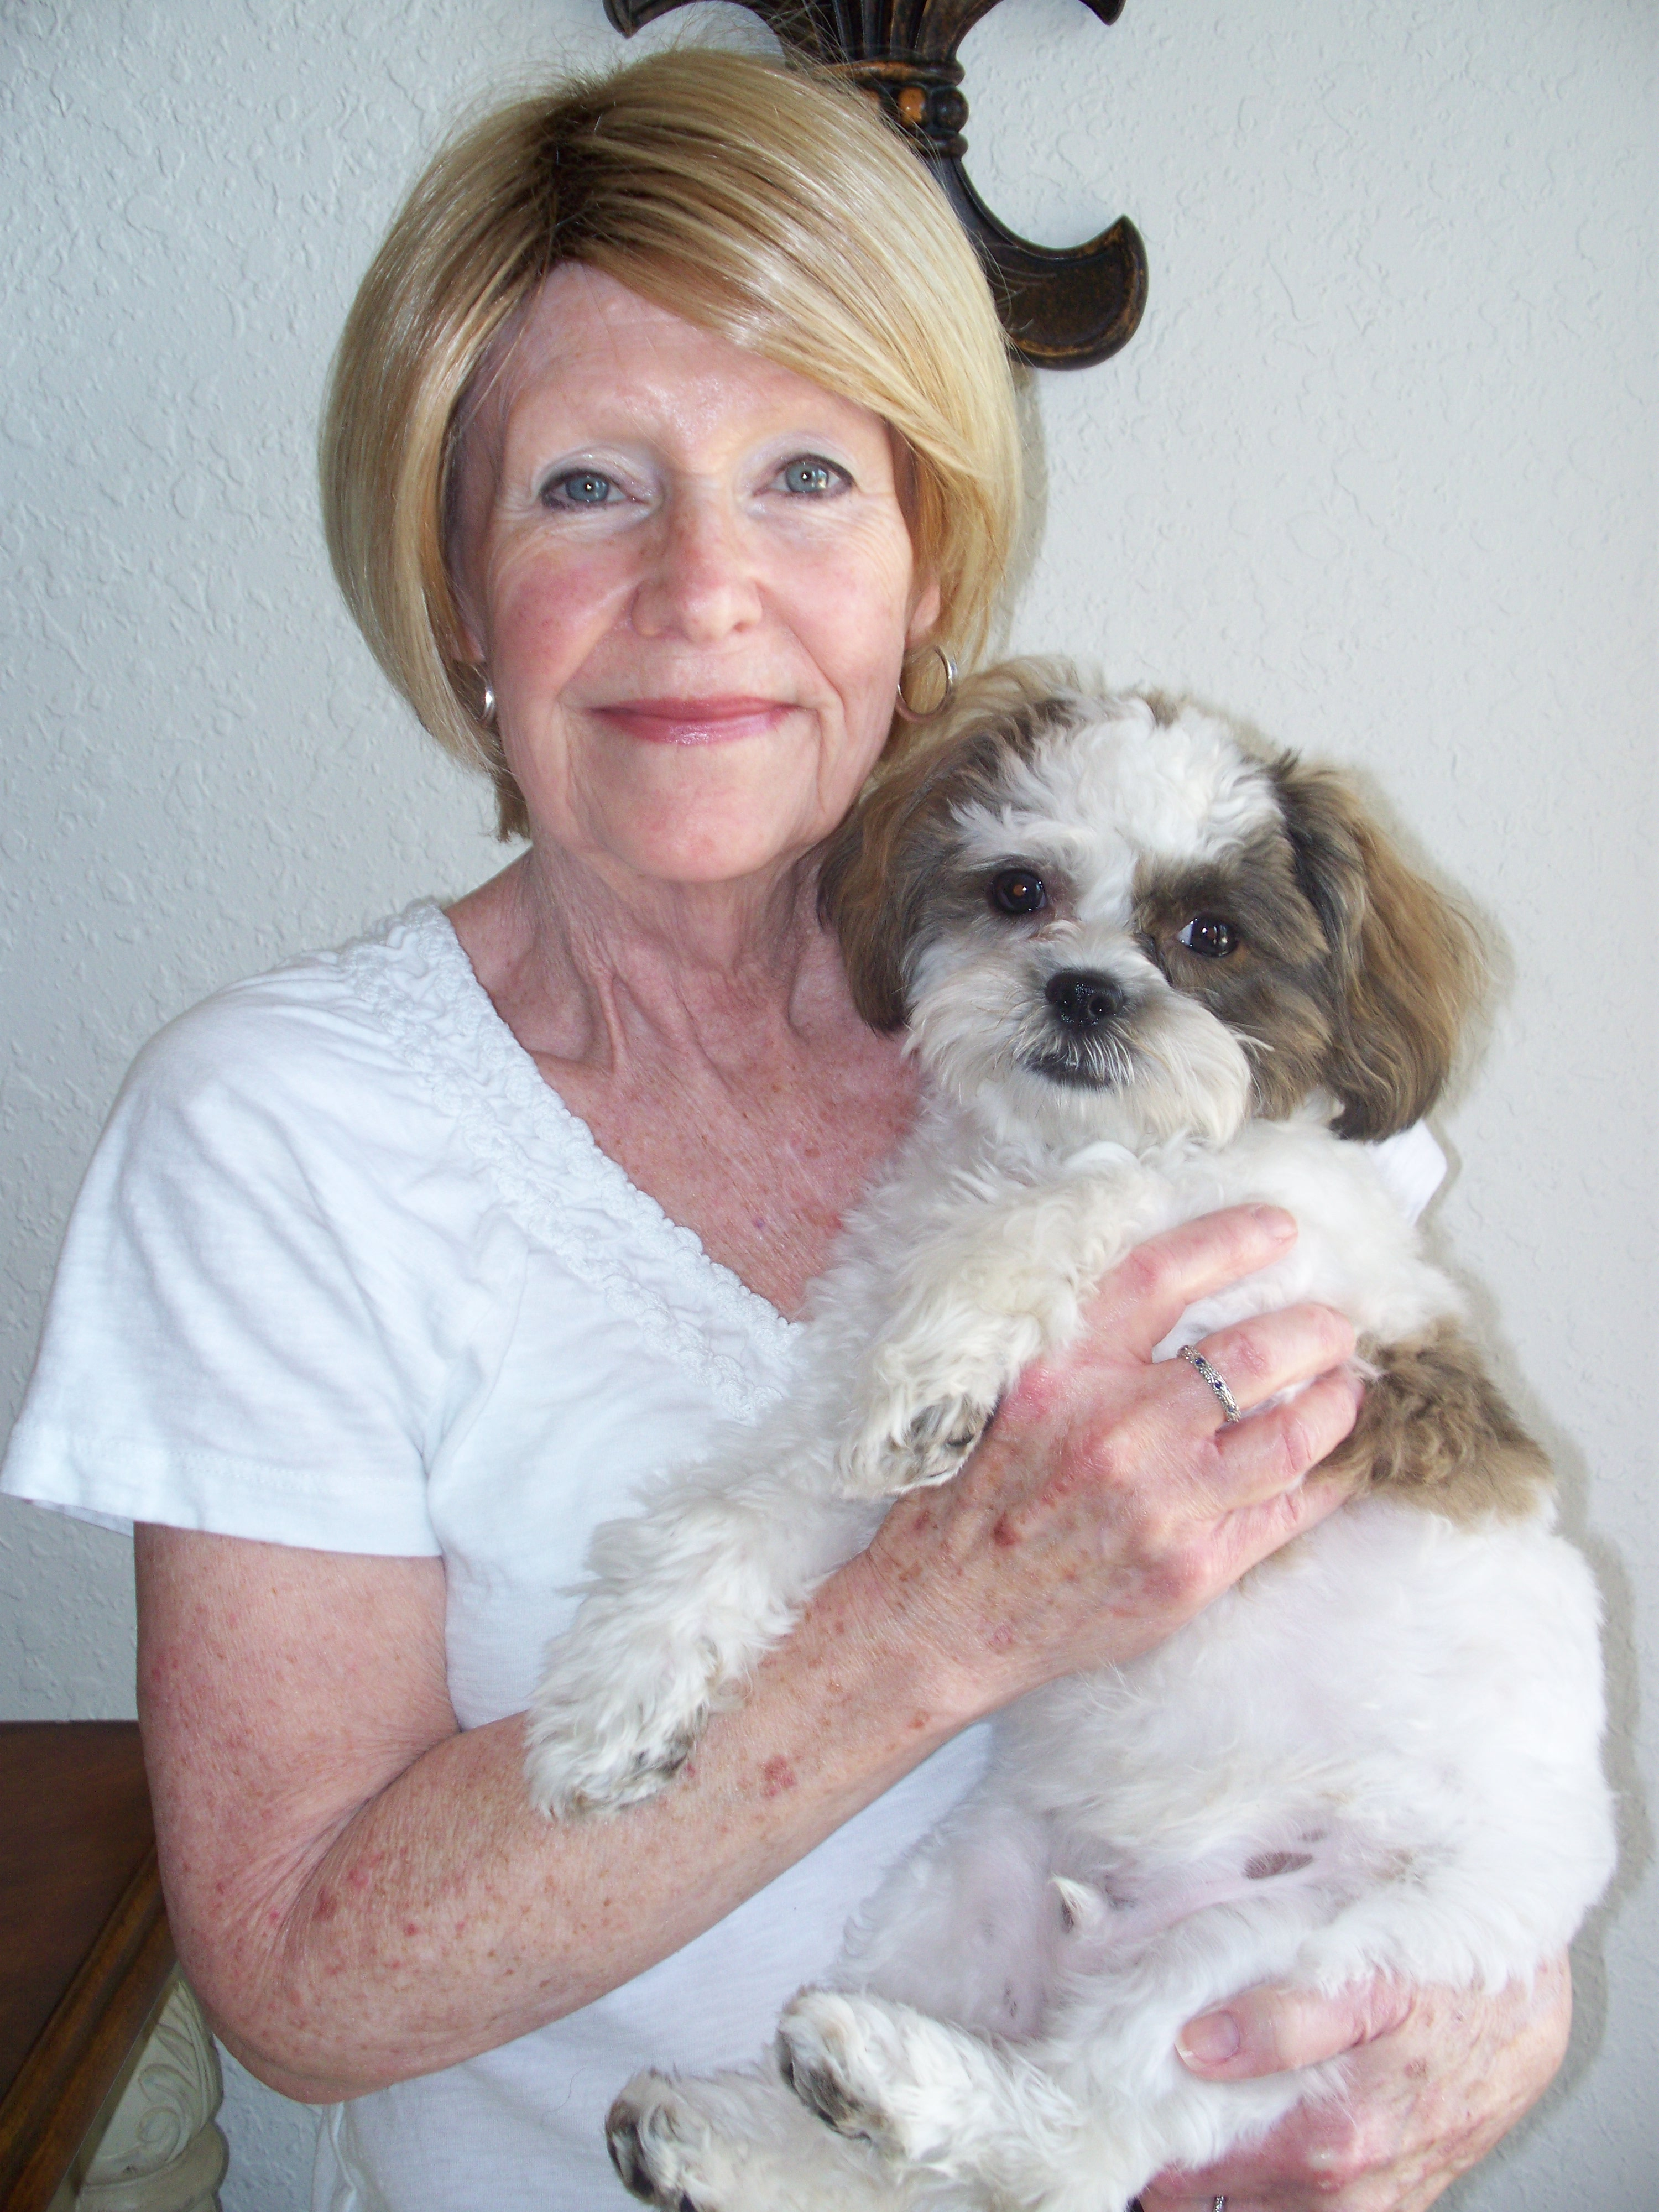 Sharon and her Ollie. He was with us in the hospice at the end. She loved the little guy. He brought her great joy.